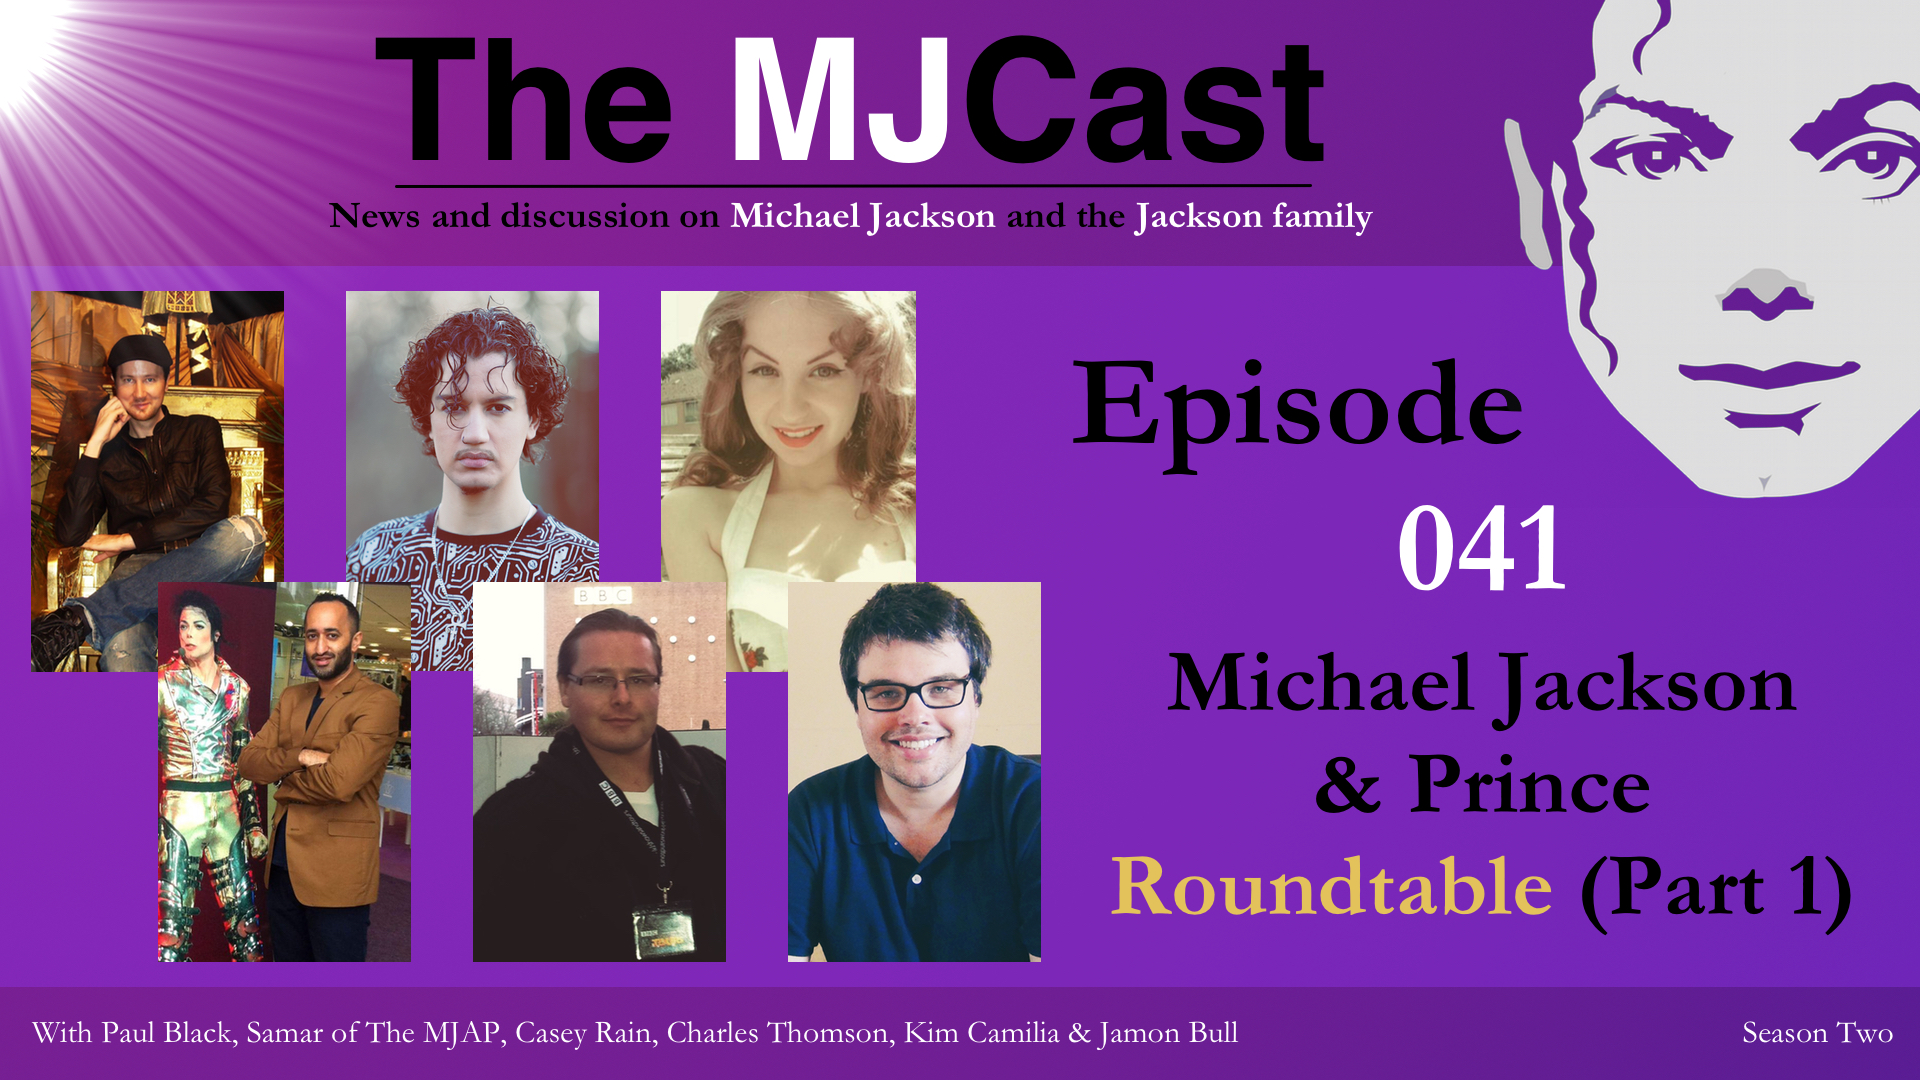 episode-041-michael-jackson-prince-roundtable-part-1-show-art